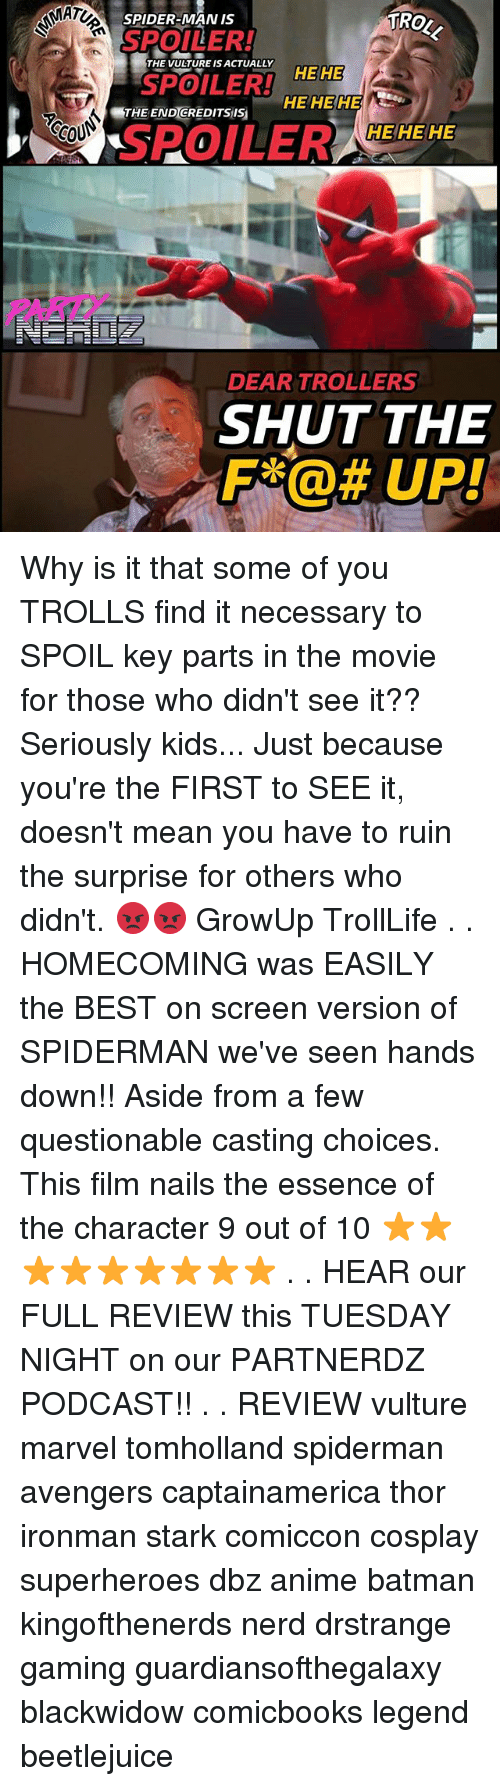 Anime, Batman, and Memes: MAT  TRO  SPIDER-MAN IS  SPOILER!  THE TURE S CLYEE  SPOILER!  HEHE  HE HE HE  THE END GREDITSis  CCOU  HEHE HE  SPOILER ZEHEHE  0  PARI  DEAR TROLLERS  SHUT THE  F@UP! Why is it that some of you TROLLS find it necessary to SPOIL key parts in the movie for those who didn't see it?? Seriously kids... Just because you're the FIRST to SEE it, doesn't mean you have to ruin the surprise for others who didn't. 😡😡 GrowUp TrollLife . . HOMECOMING was EASILY the BEST on screen version of SPIDERMAN we've seen hands down!! Aside from a few questionable casting choices. This film nails the essence of the character 9 out of 10 ⭐⭐⭐⭐⭐⭐⭐⭐⭐ . . HEAR our FULL REVIEW this TUESDAY NIGHT on our PARTNERDZ PODCAST!! . . REVIEW vulture marvel tomholland spiderman avengers captainamerica thor ironman stark comiccon cosplay superheroes dbz anime batman kingofthenerds nerd drstrange gaming guardiansofthegalaxy blackwidow comicbooks legend beetlejuice